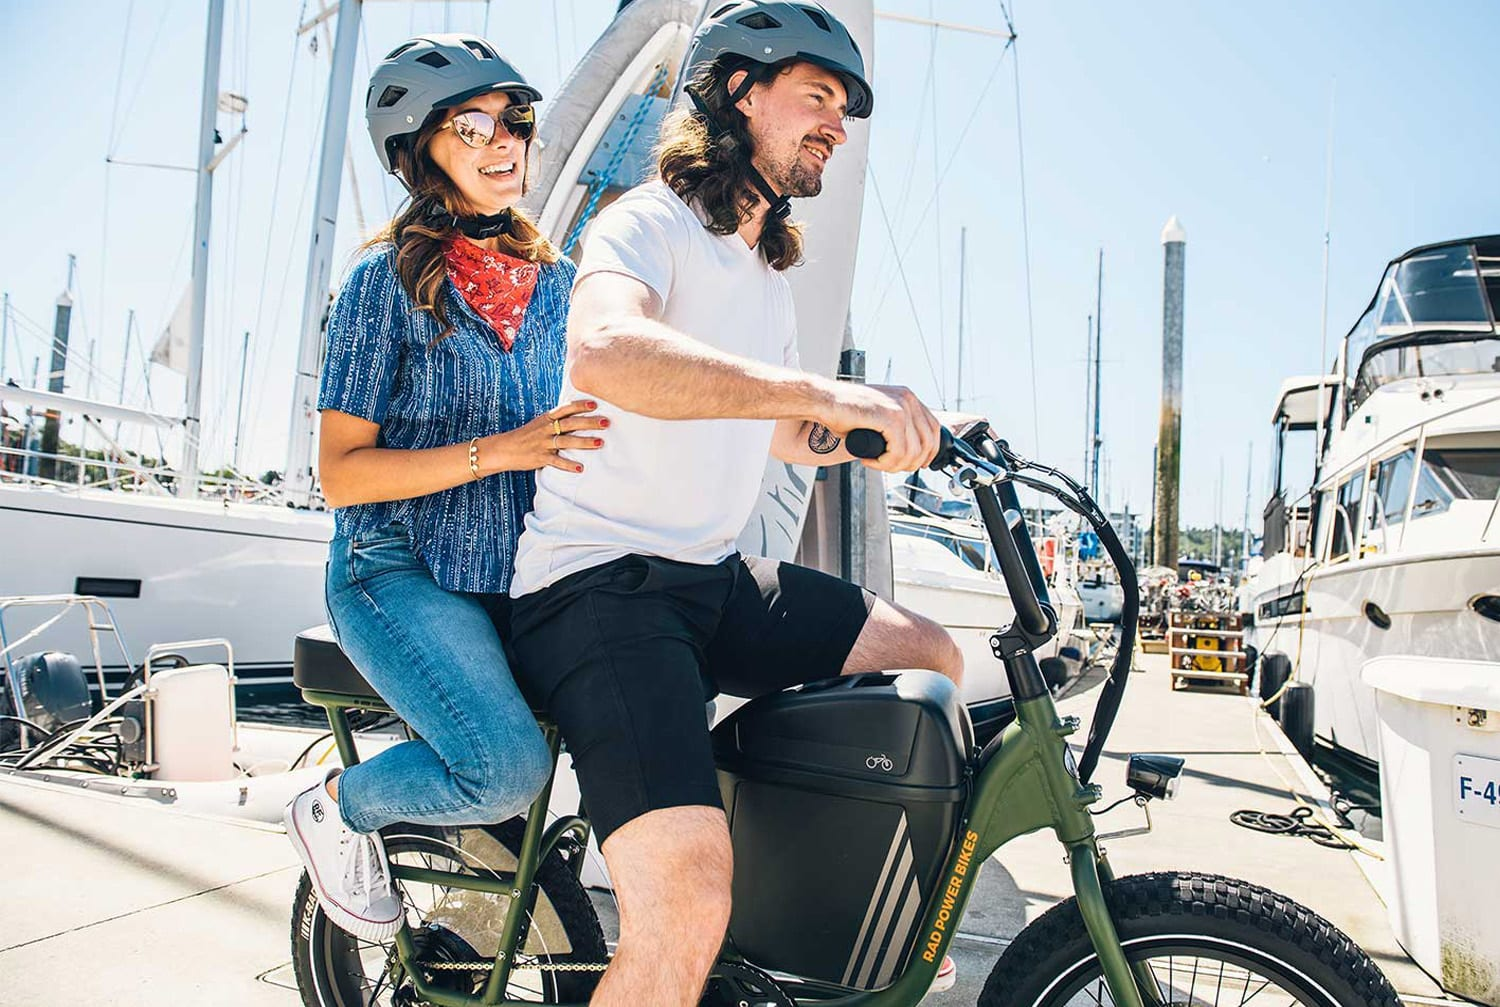 ebike rental activities at Rockley Park